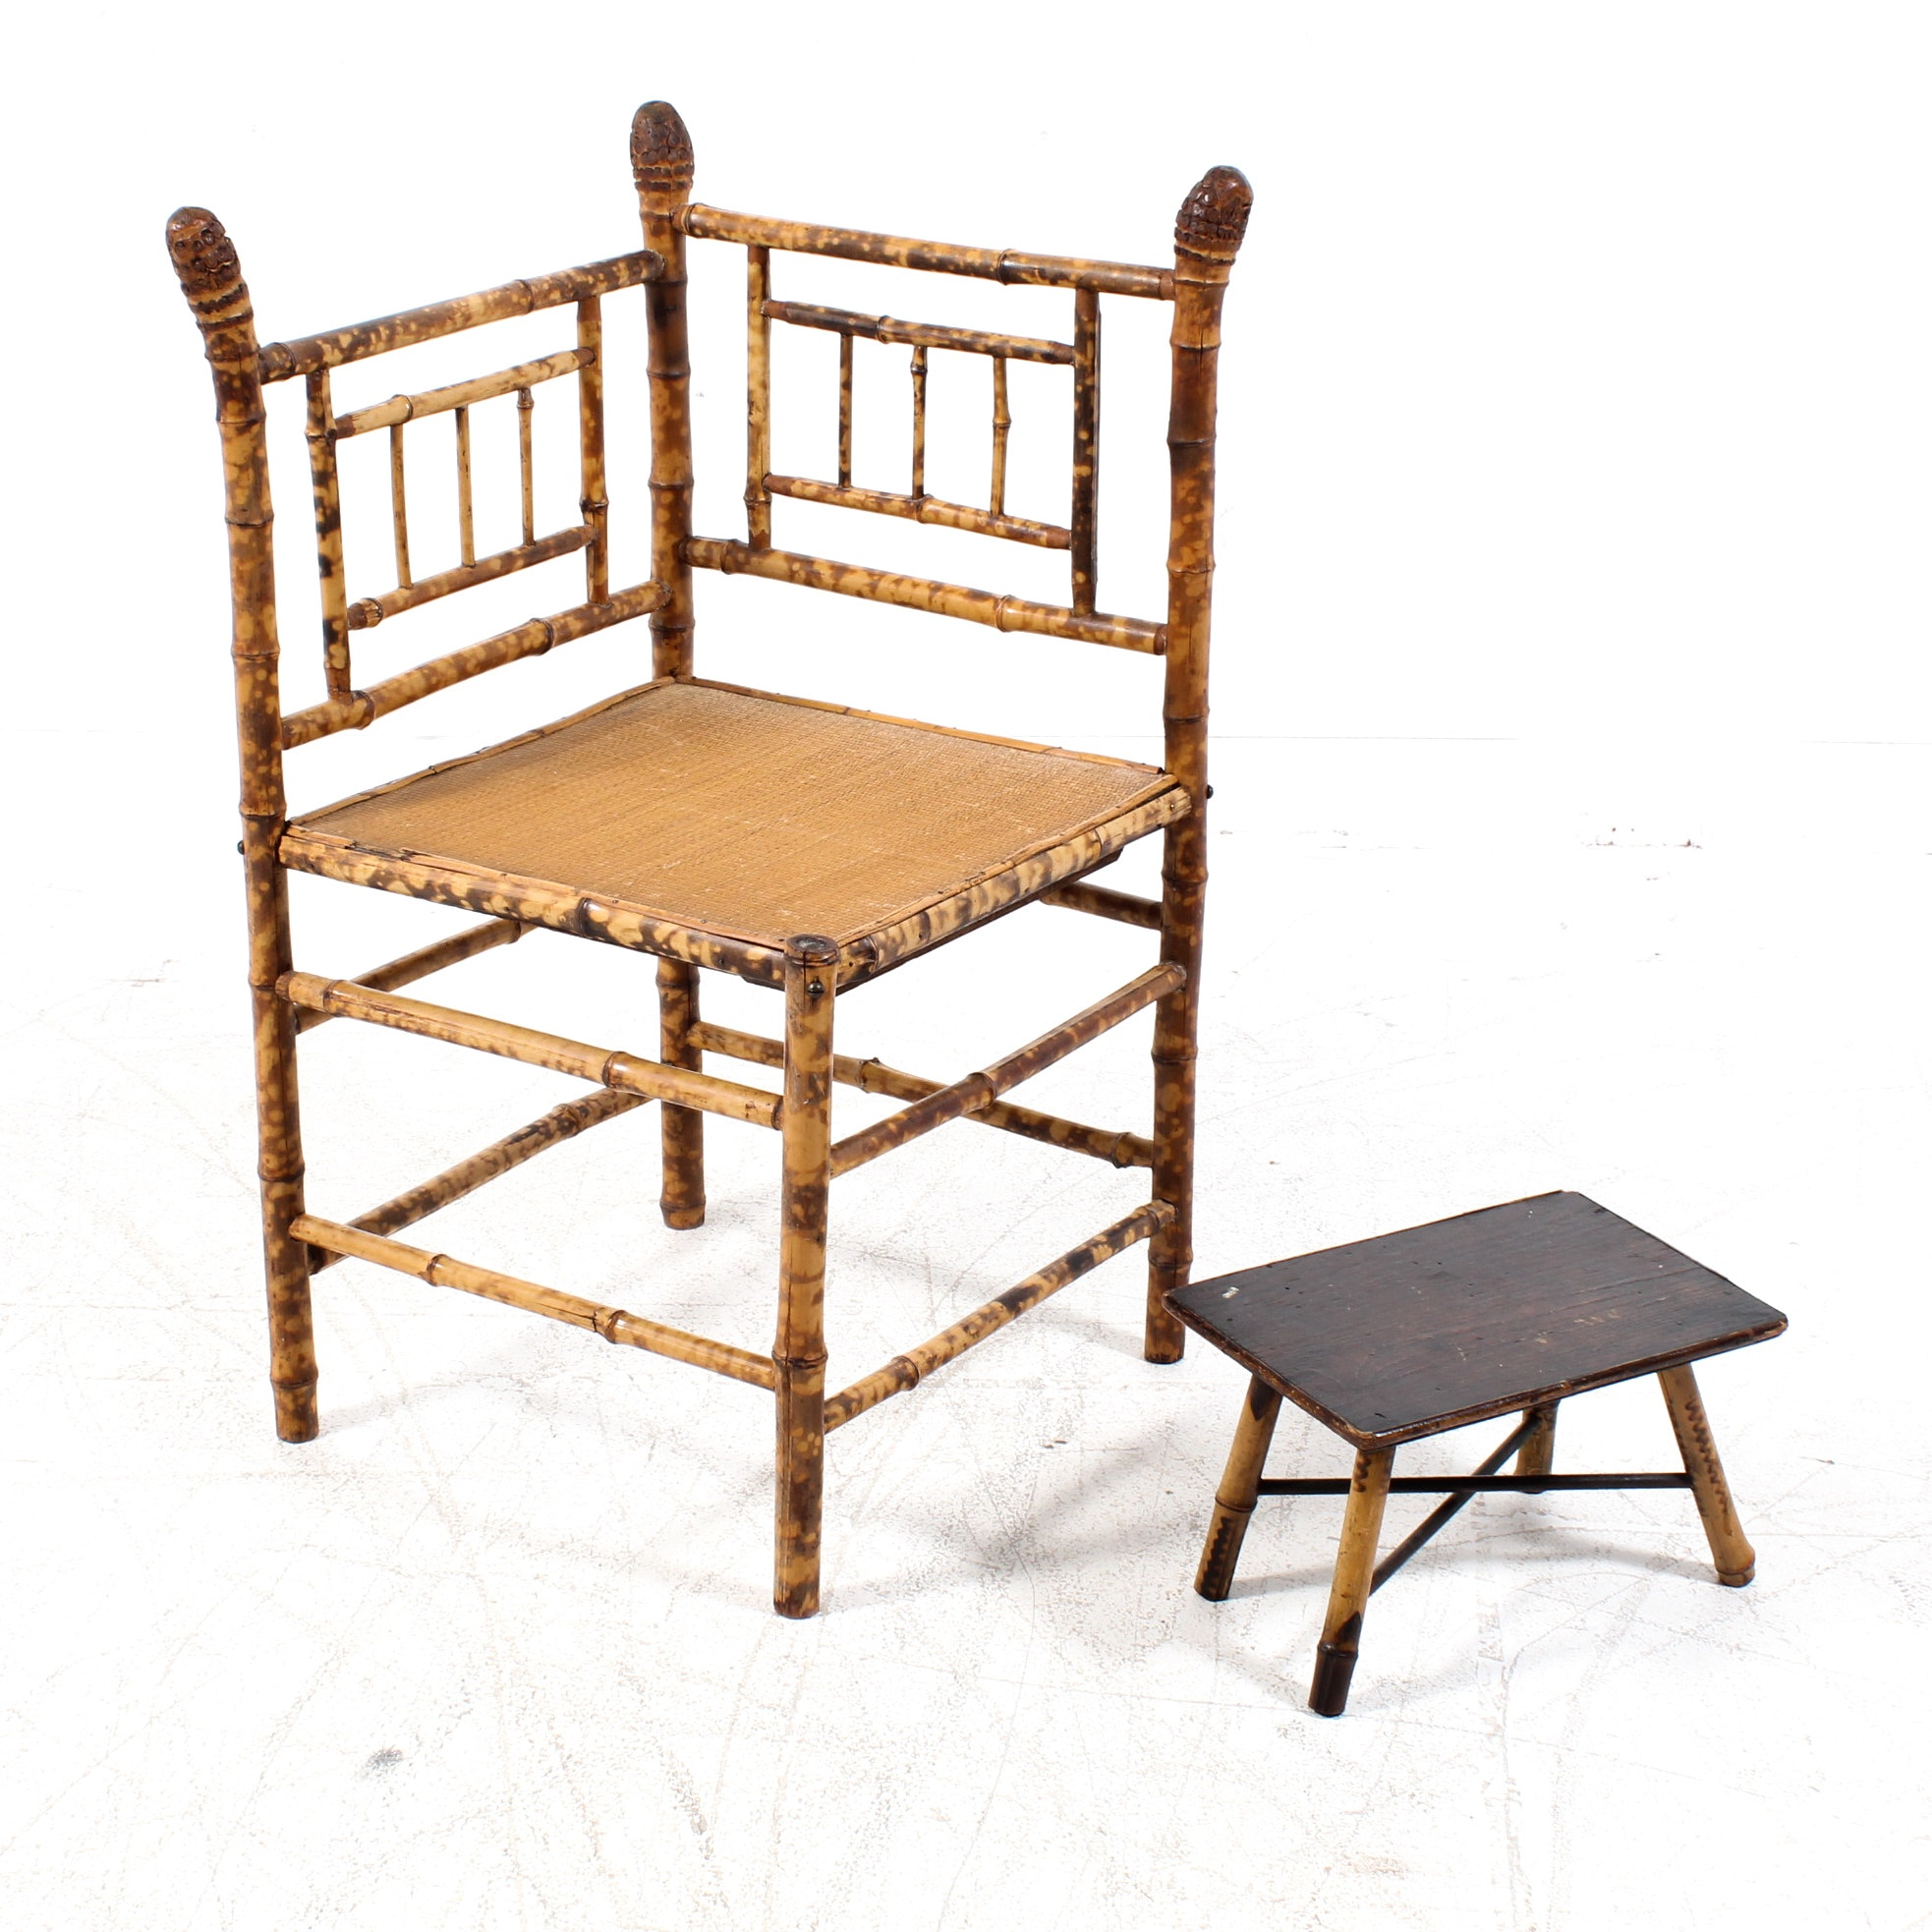 Bamboo Corner Chair with Wootrest